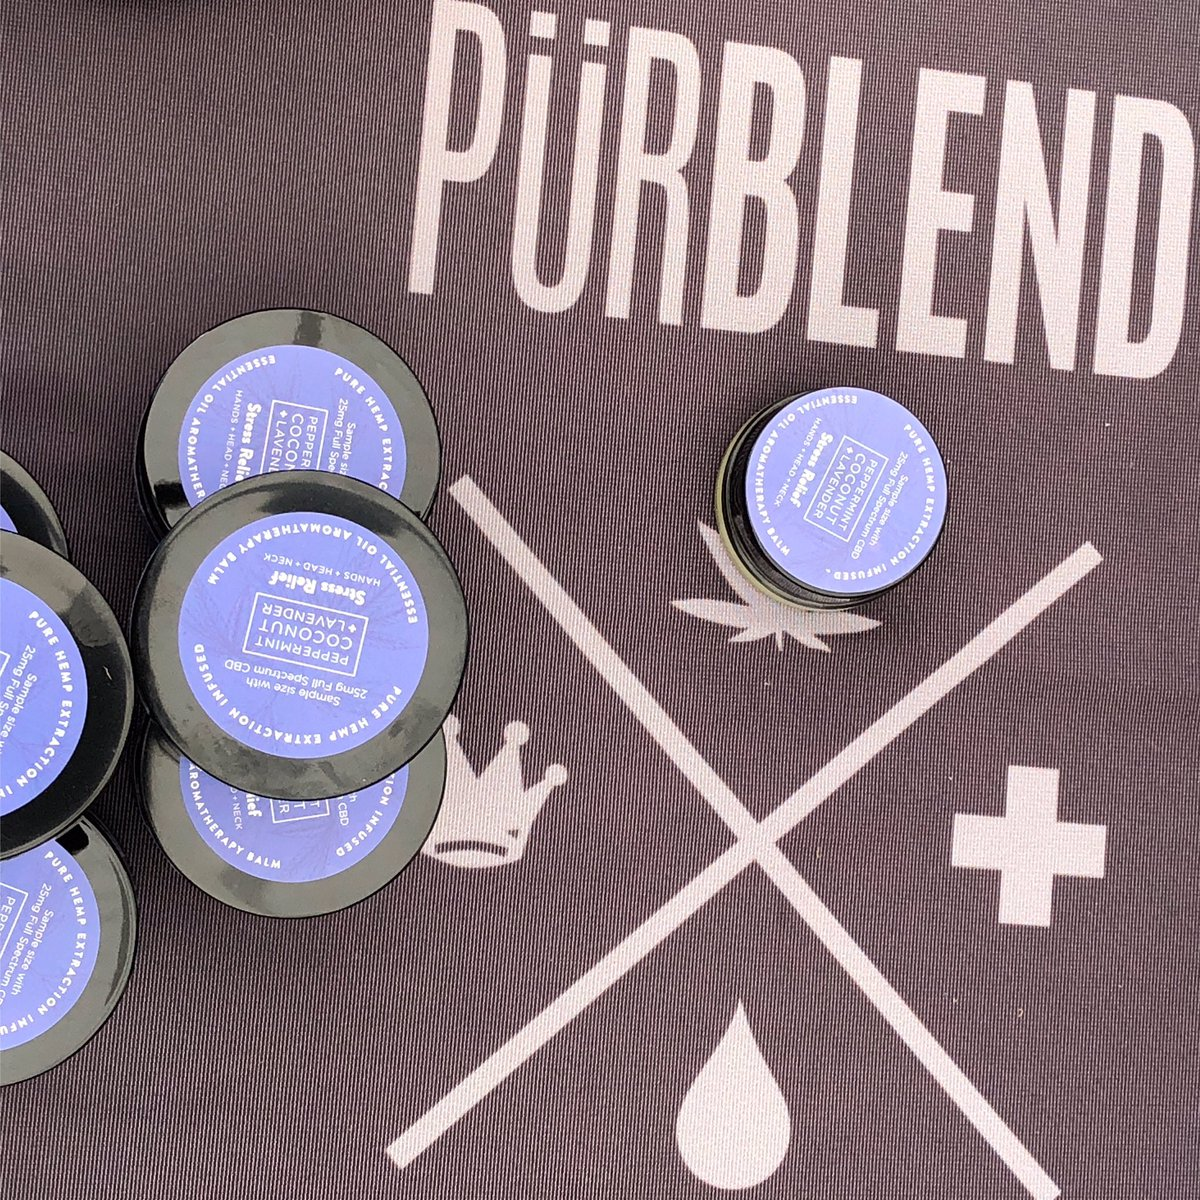 Stress Relief Balm. The herbalicious scent may relax and soothes the senses while the essential oils, botanicals and hemp derived CBD loosen up those temples, head and neck muscles. @purblend  #CBD #SanDiegoCBD #SanDiego #cbdheals #LosAngeles #CBDlife #Organic #PurblendScience<br>http://pic.twitter.com/407kII8gjx